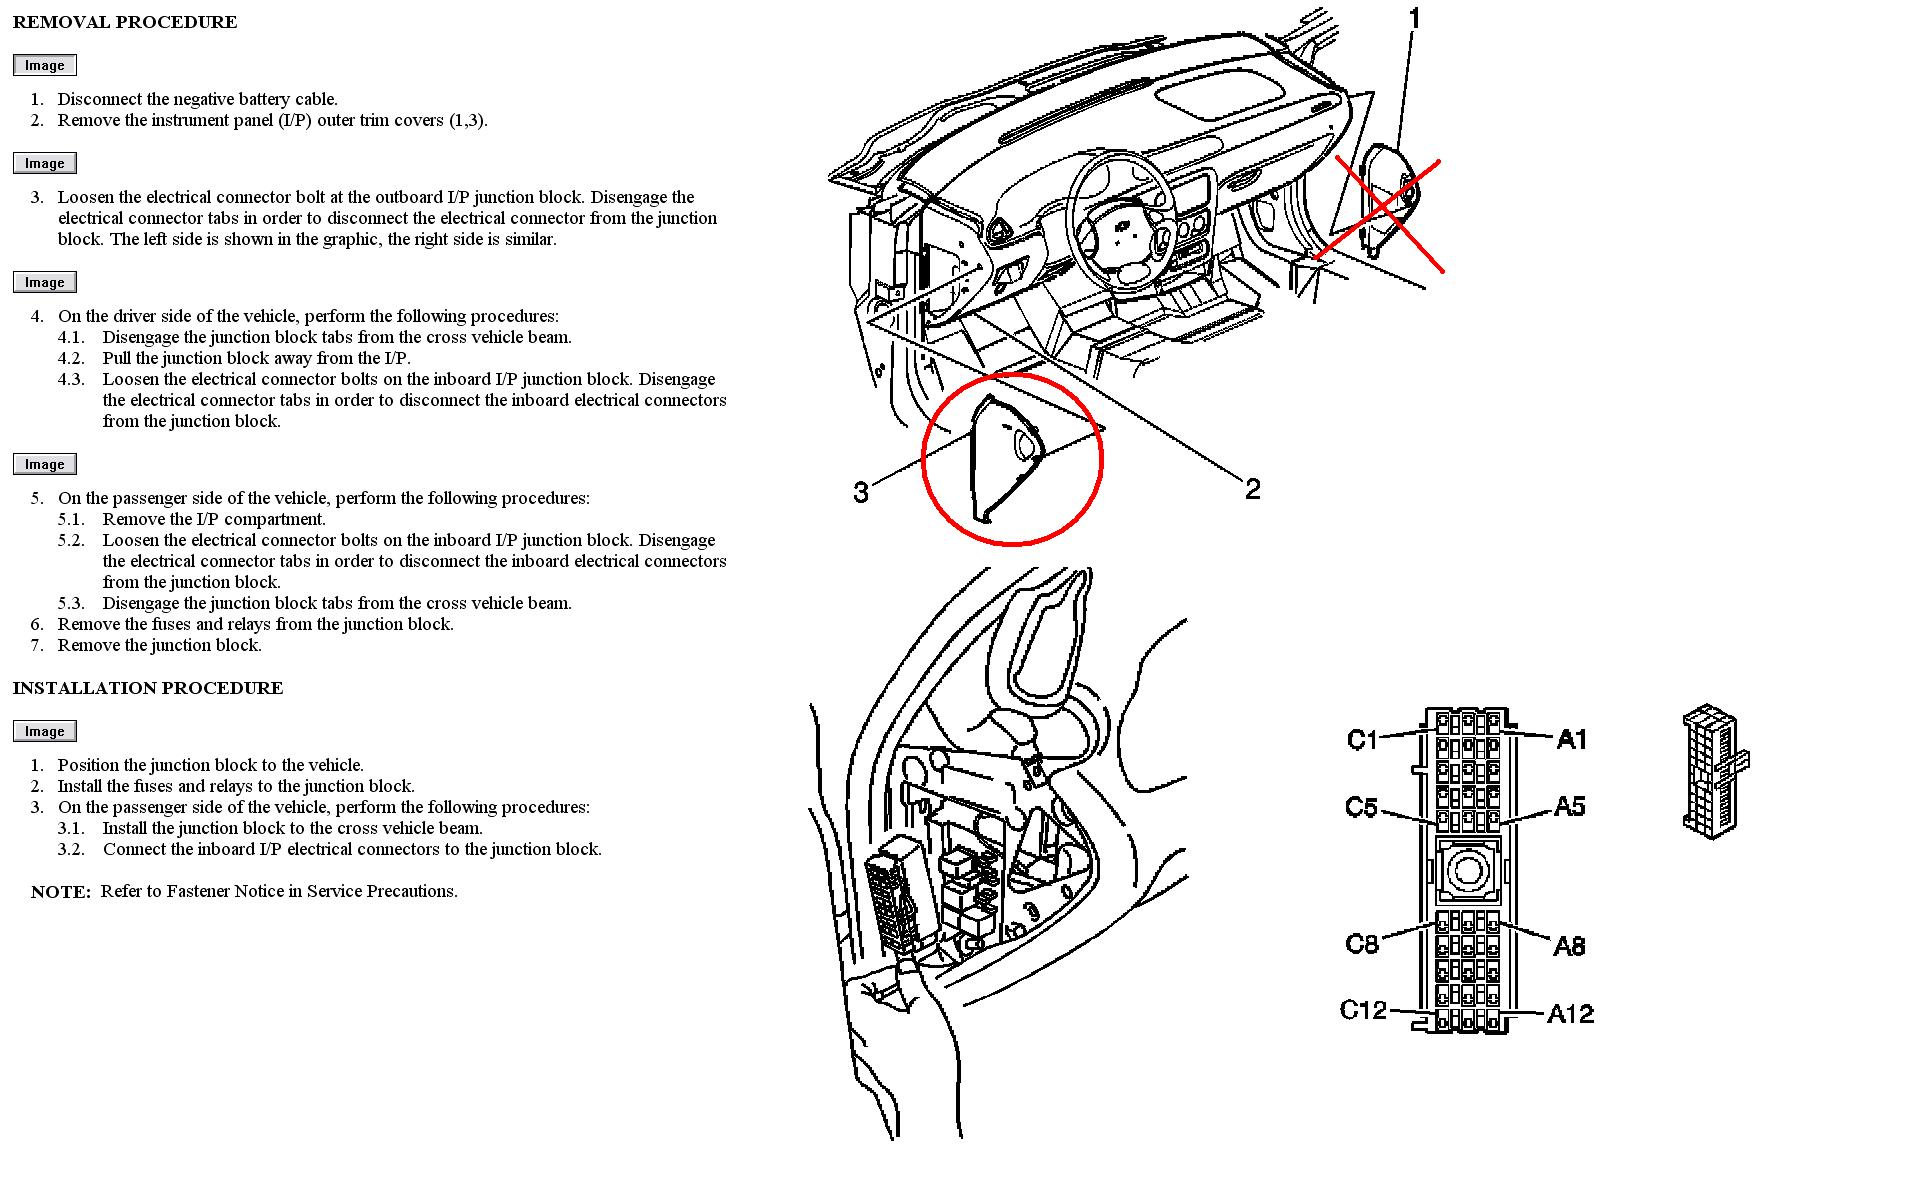 2000 pontiac grand am fuse box  u2022 wiring diagram for free